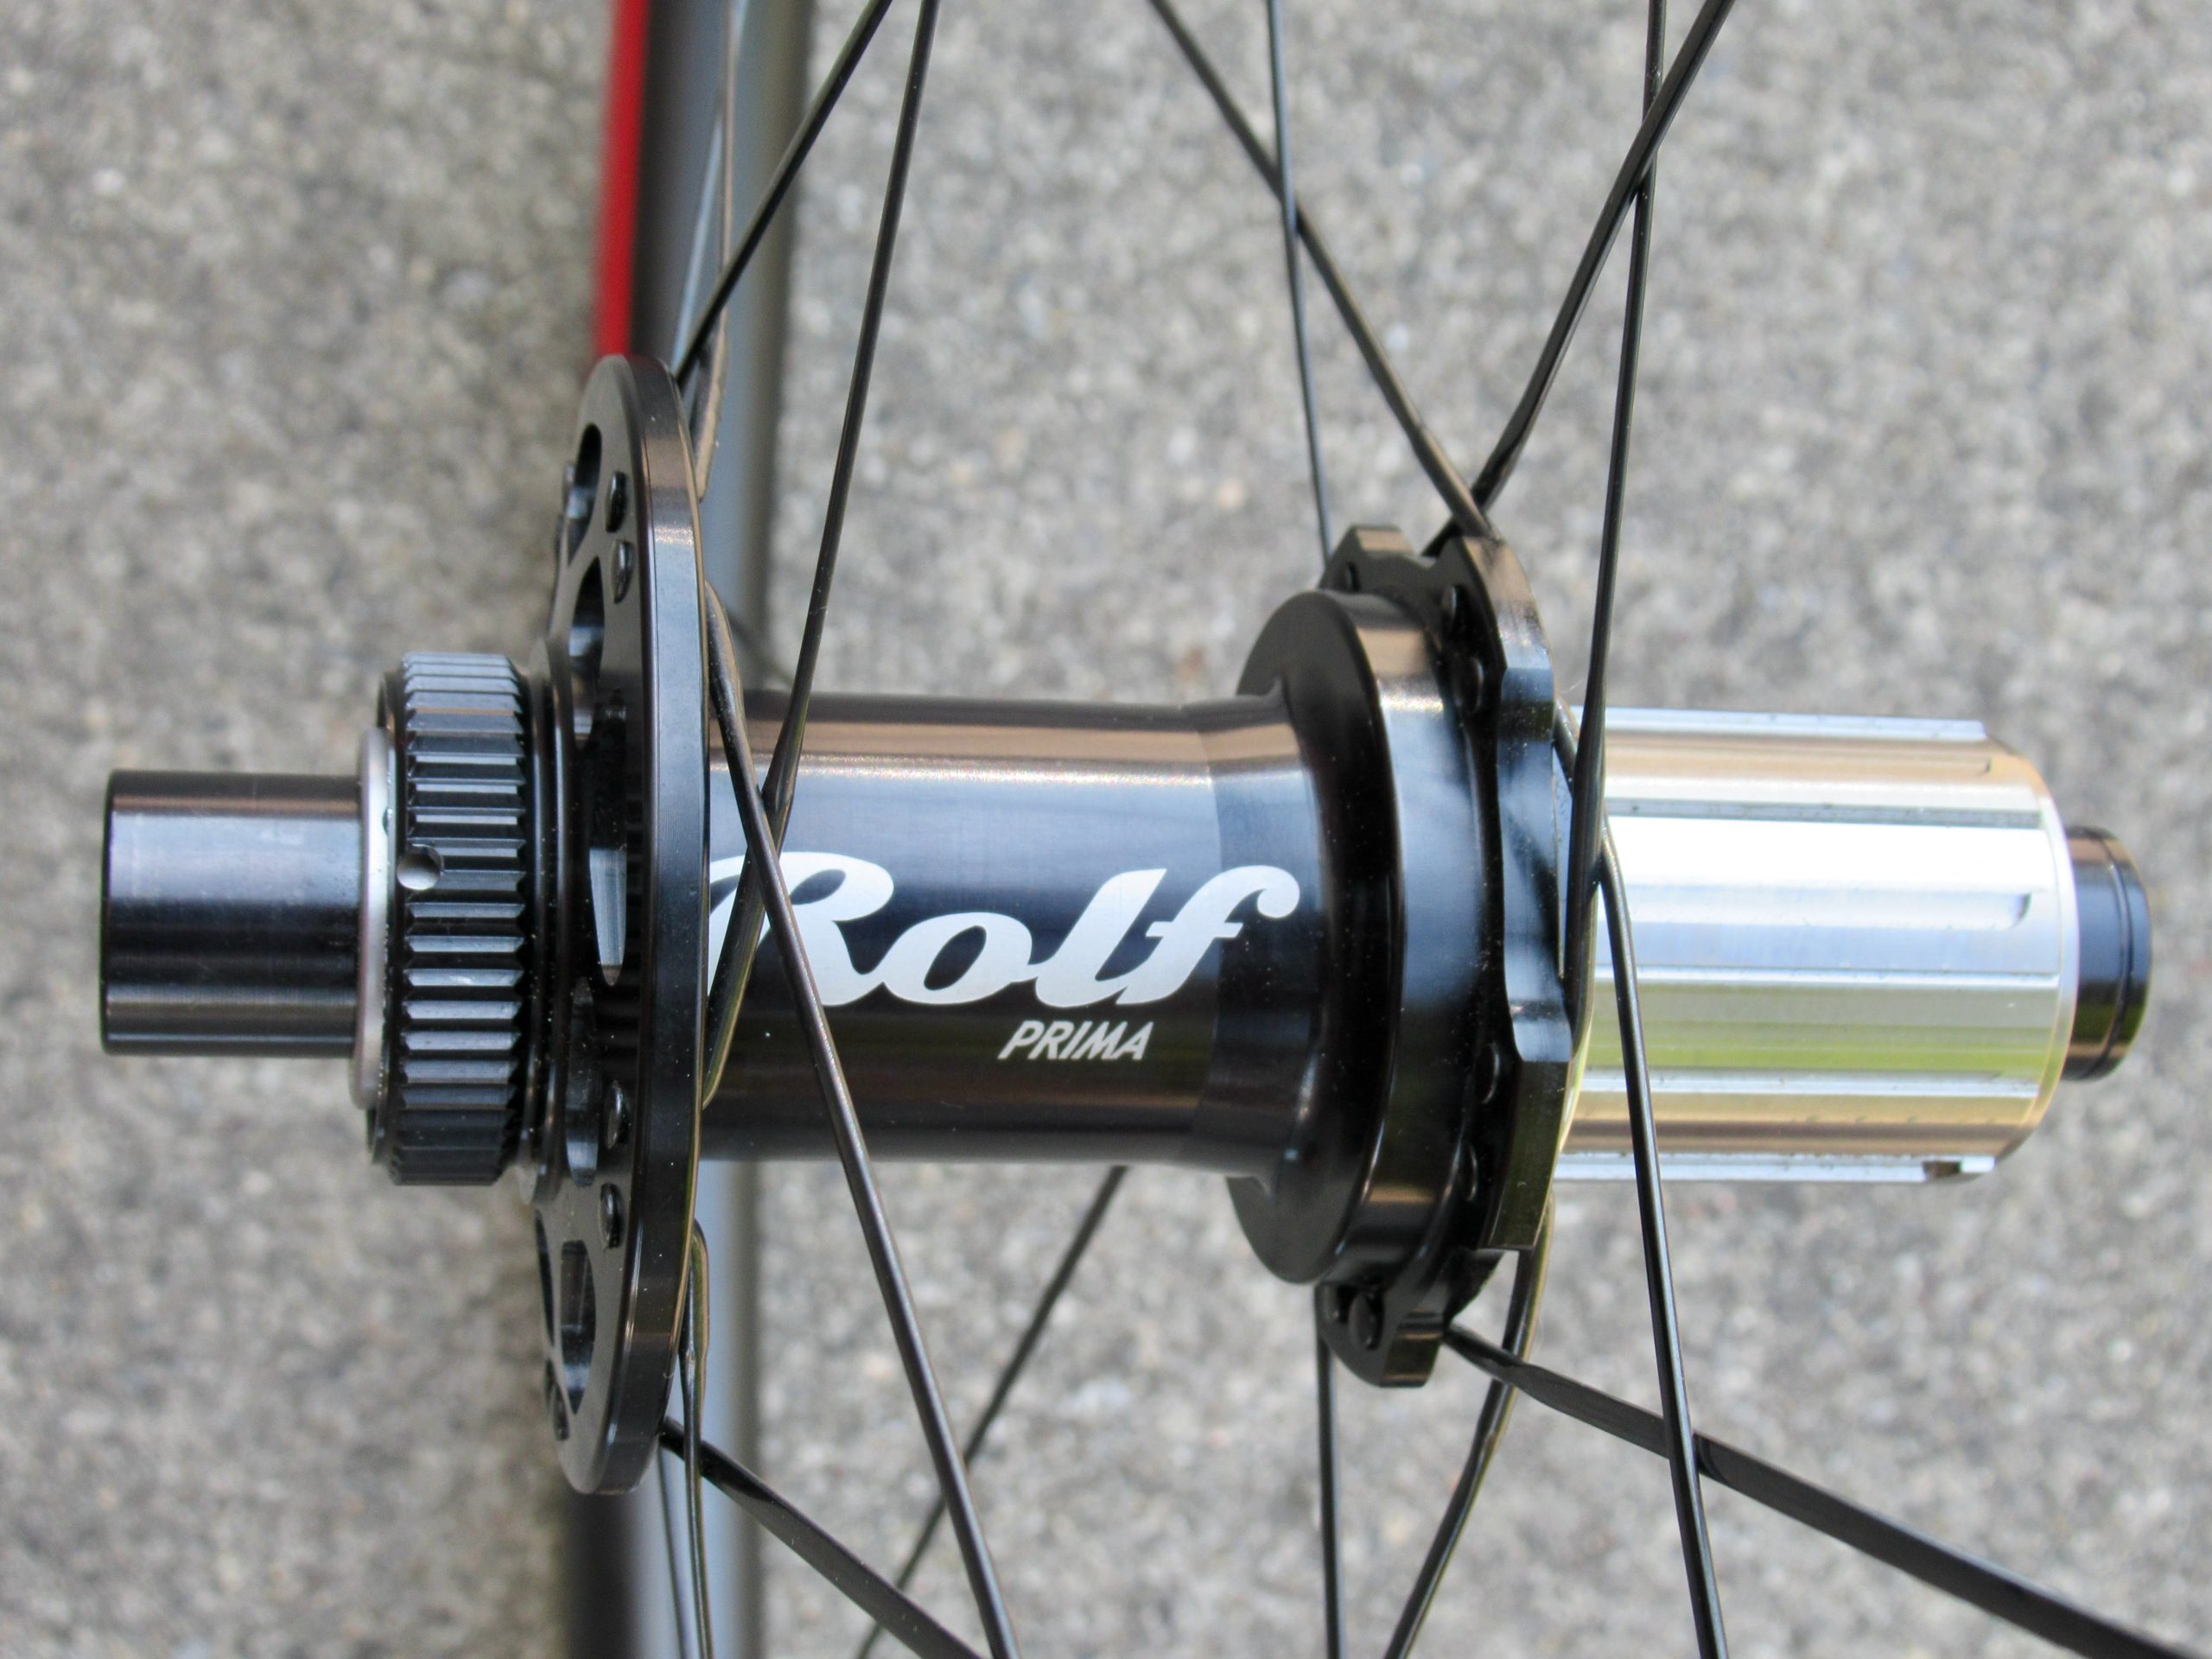 Review: Rolf Prima Ares 4 Disc wheels fast on the road and gravel